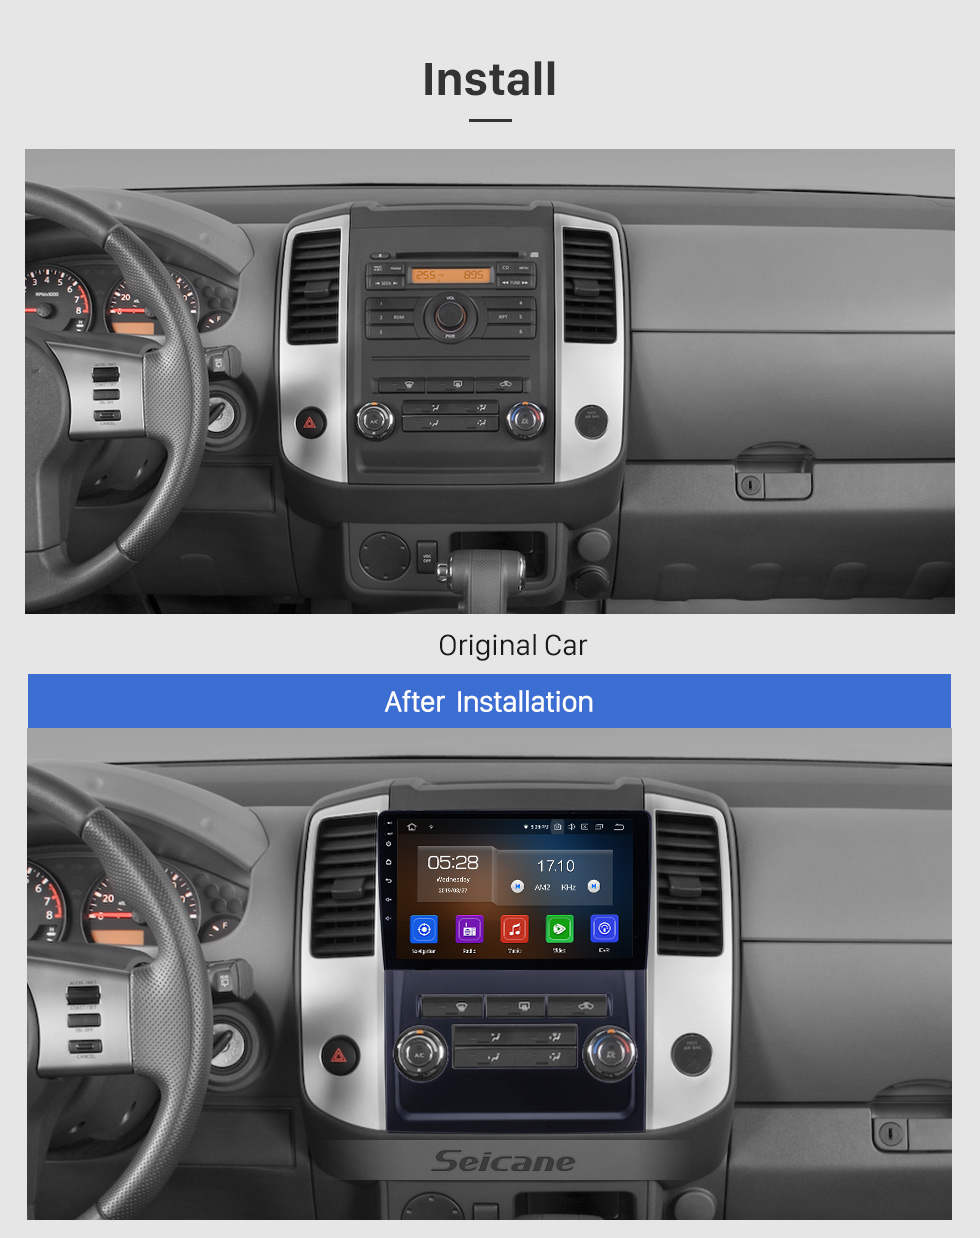 Seicane 9 inch 2009-2012 Nissan Frontier/Xterra Android 9.0 GPS Navigation Radio Bluetooth Touchscreen AUX Carplay support OBD2 DAB+ 1080P Video